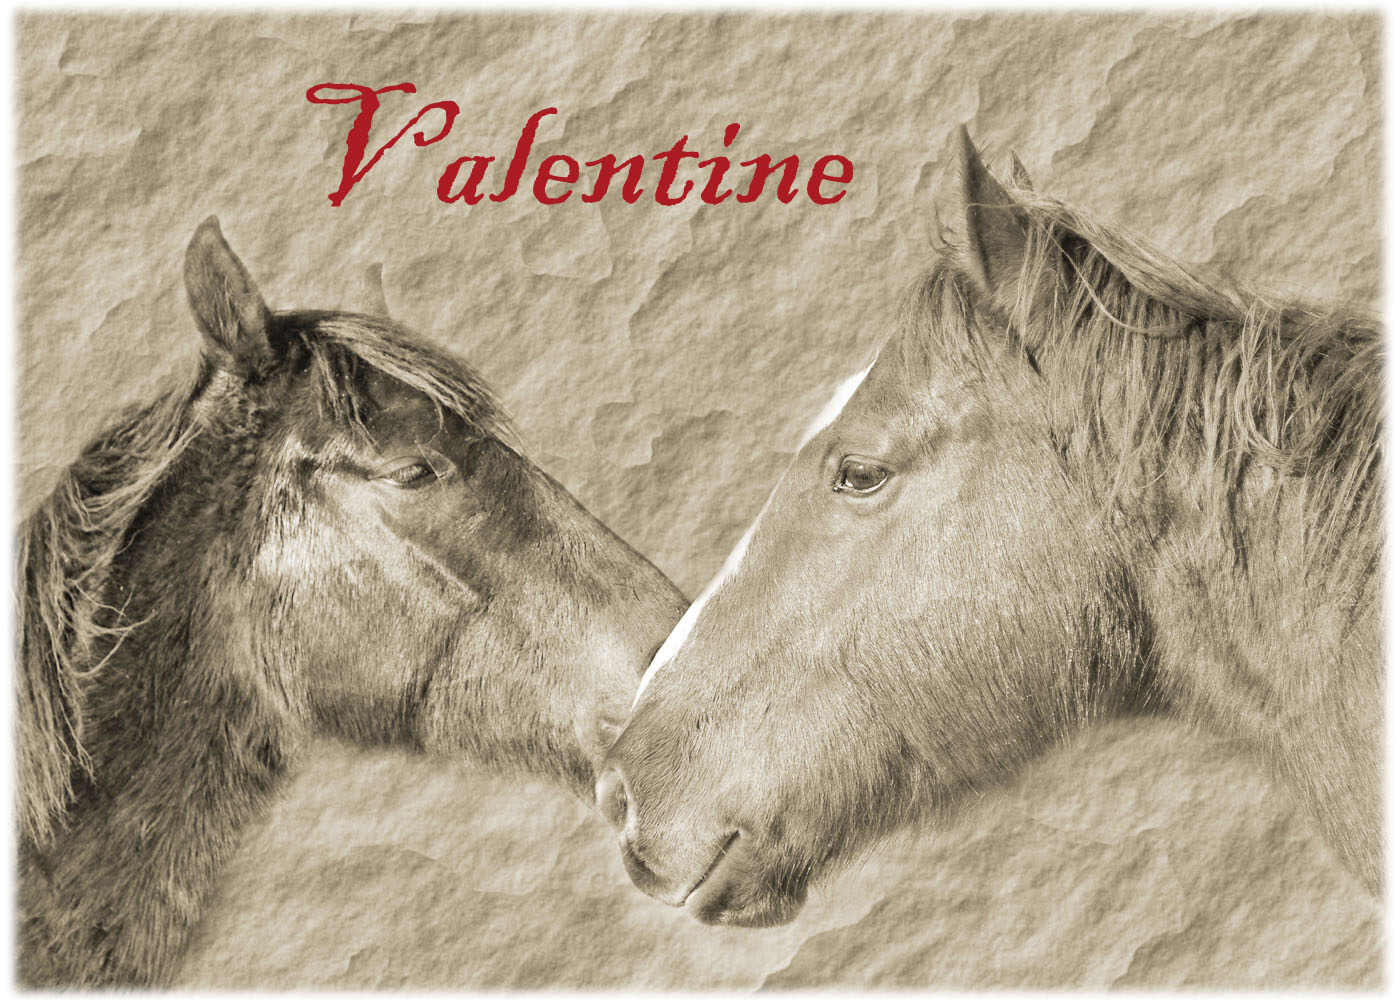 Our Rescued Horses On Valentineu0027s Day Cards